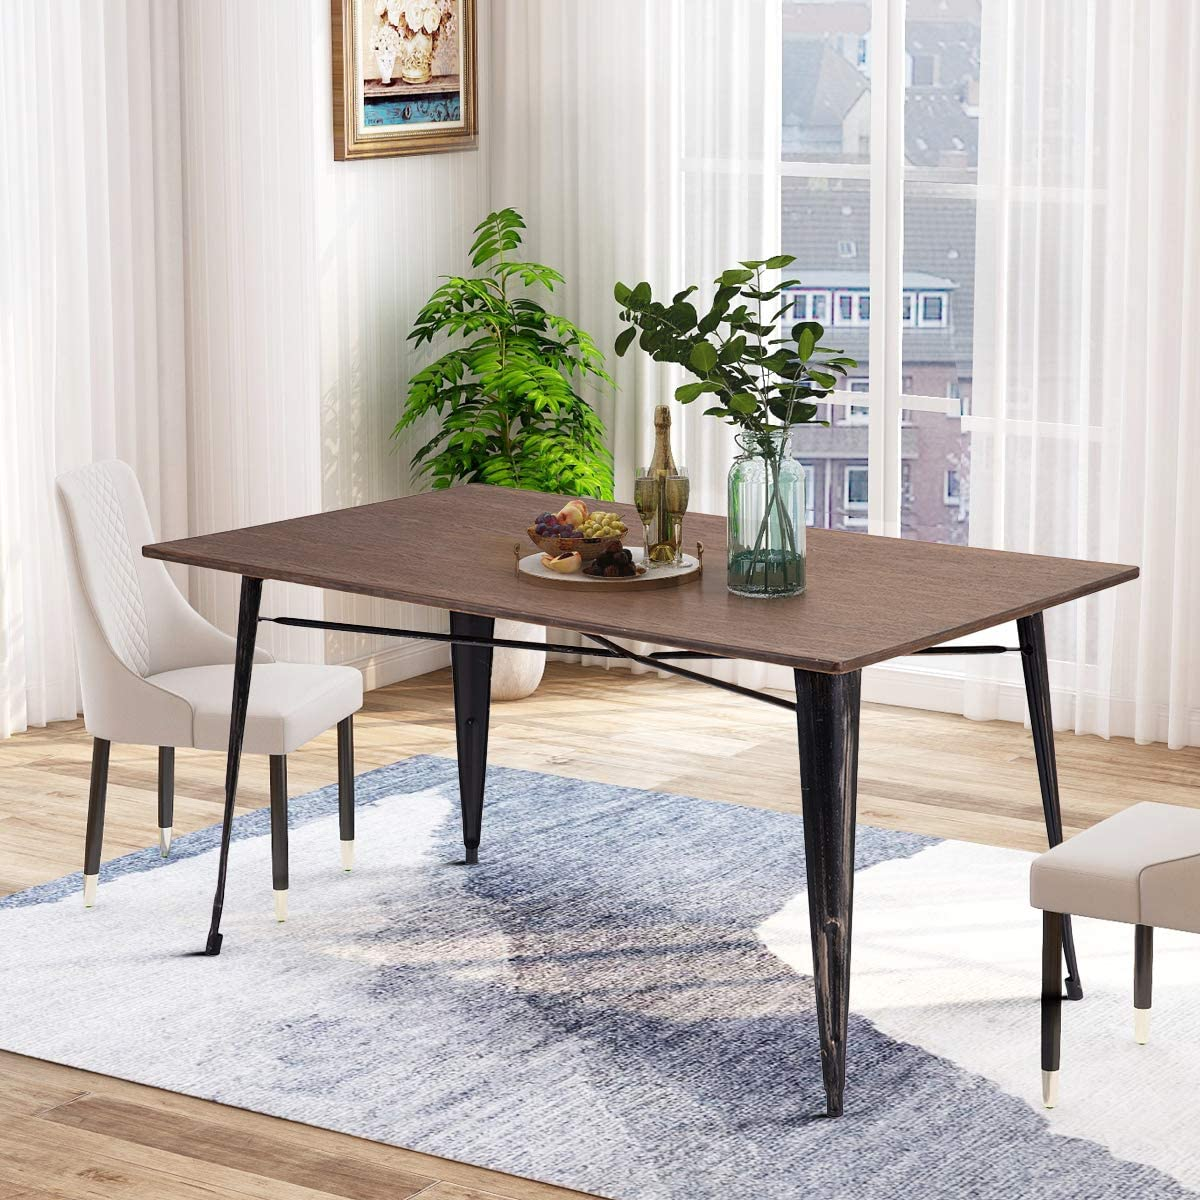 Binrrio Dining Table Set Industrial Wooden Kitchen Table Dining Table with A Bench, Wooden Desk Metal Frame Home Kitchen Dining Room Furniture, Brown